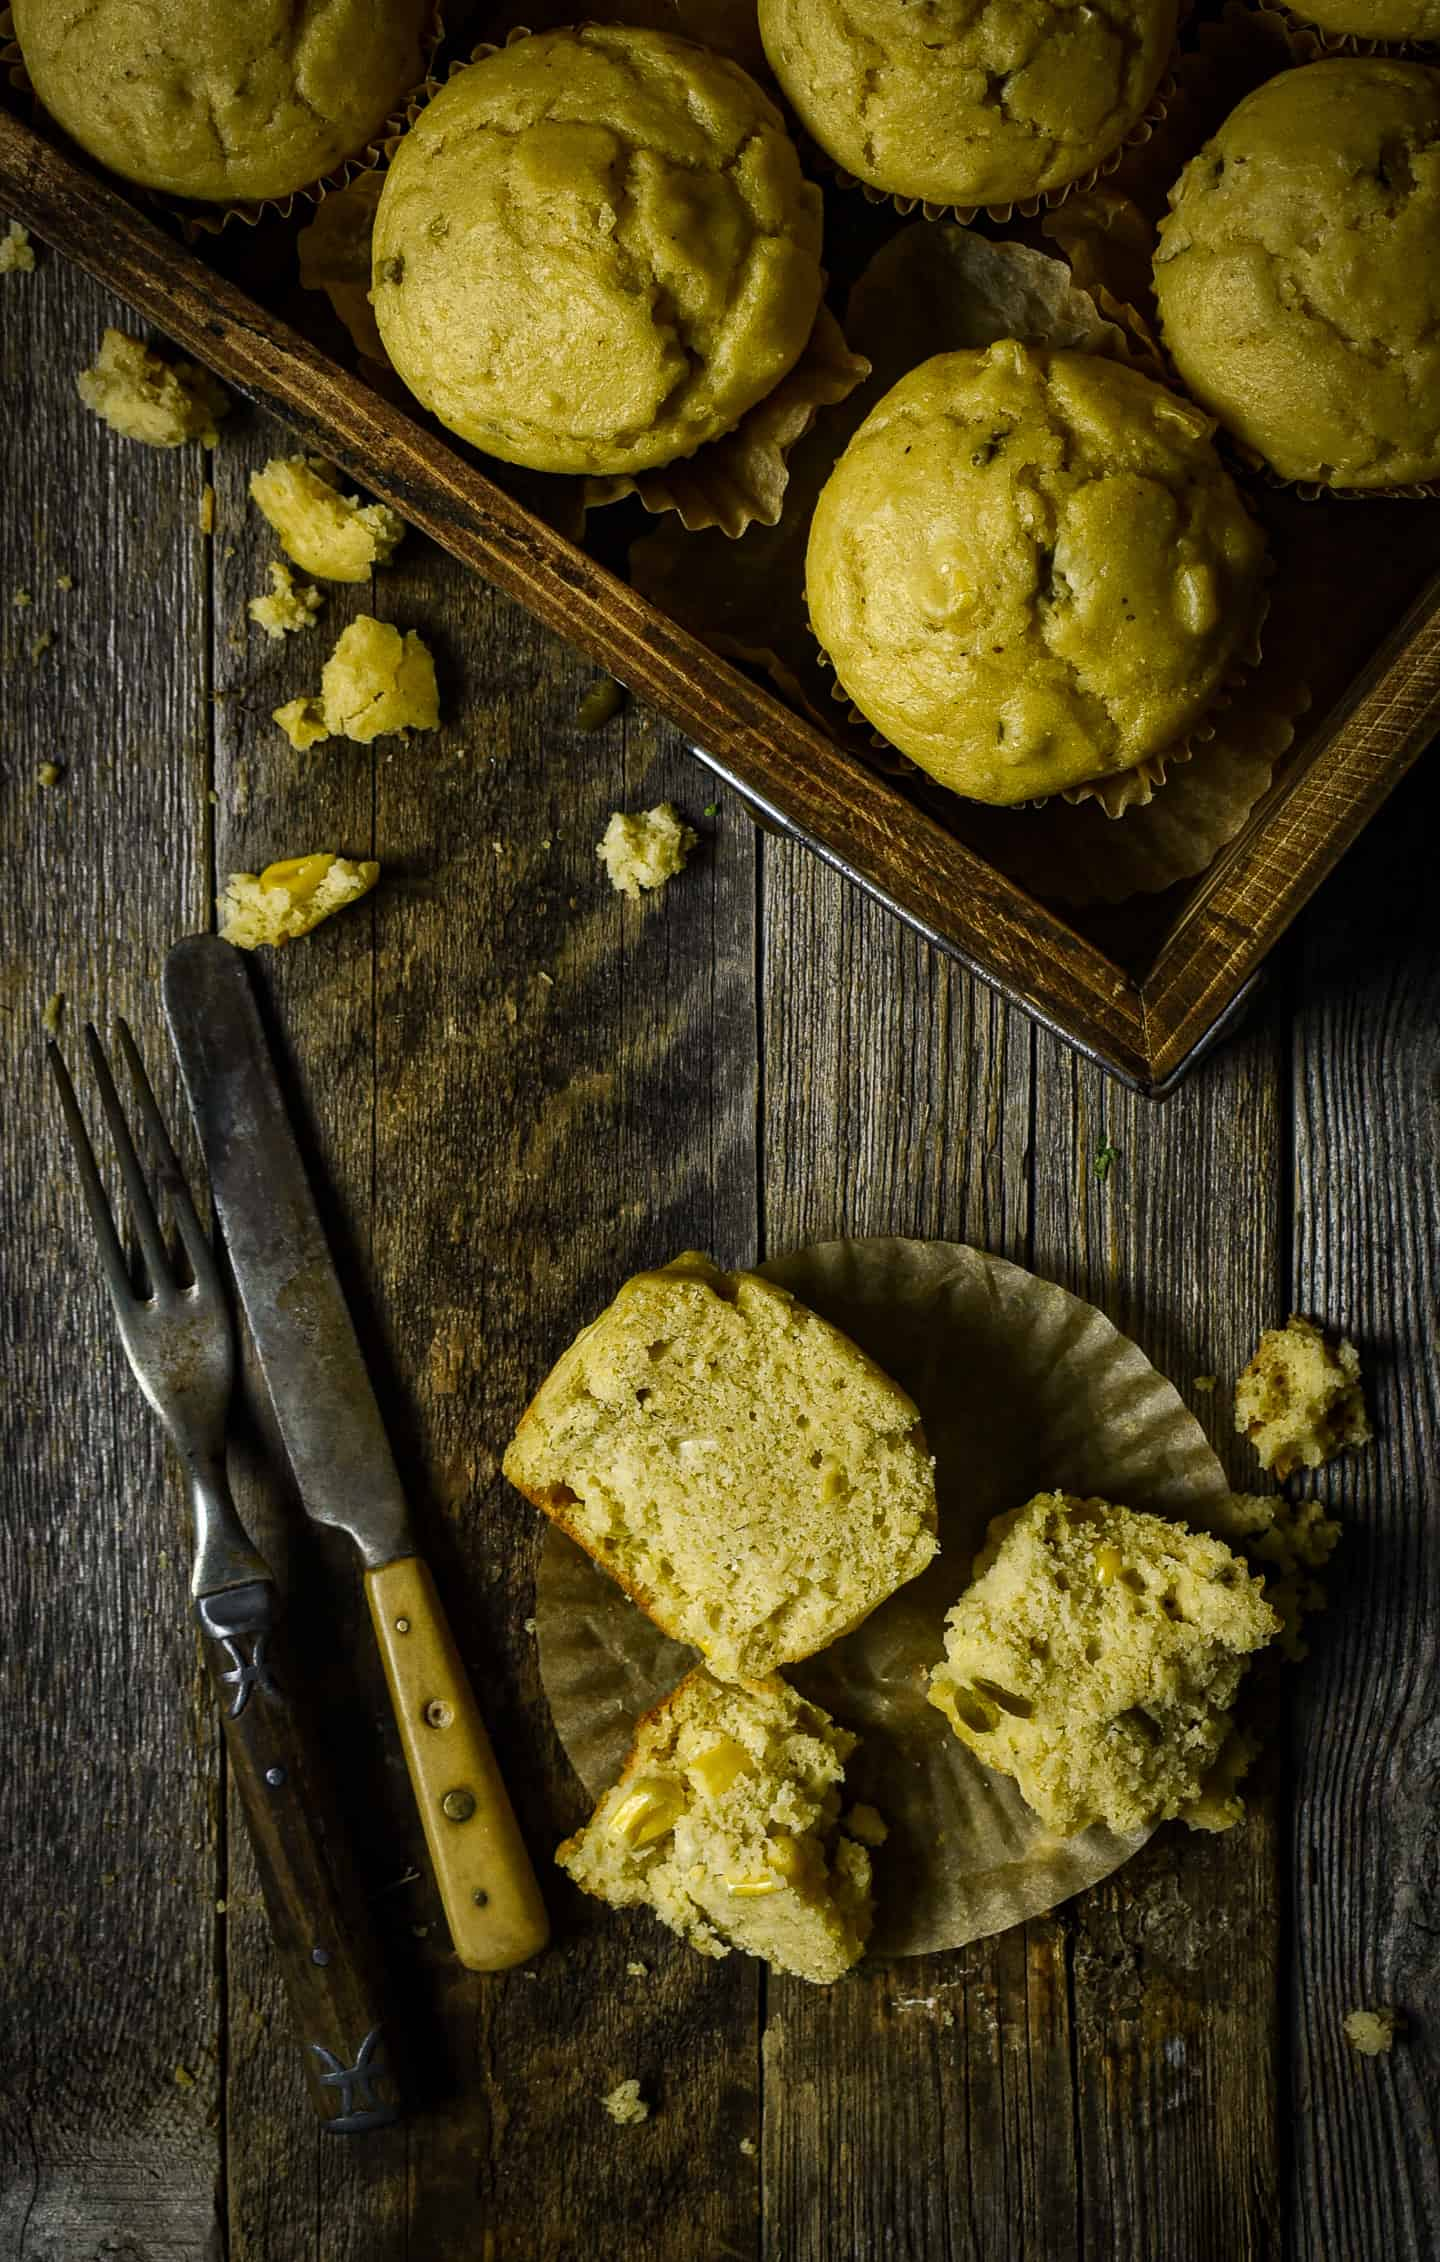 Corn bread muffin cut in half with knife and fork.